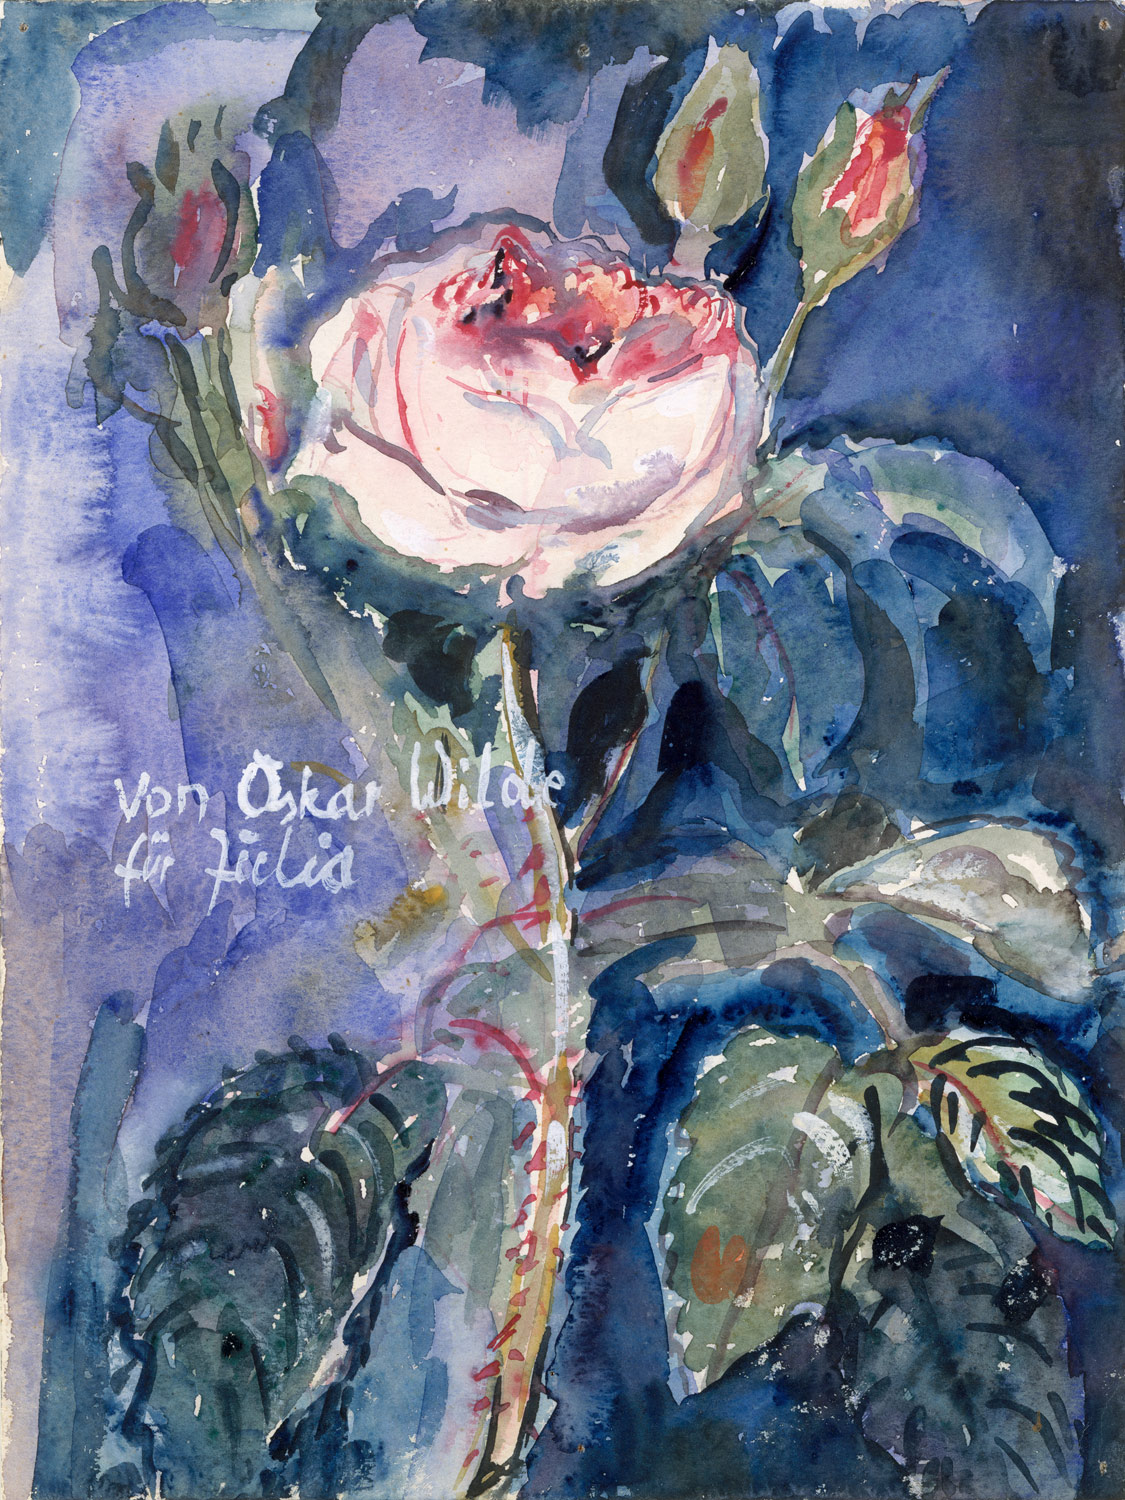 History of watercolor art -  From Oscar Wilde